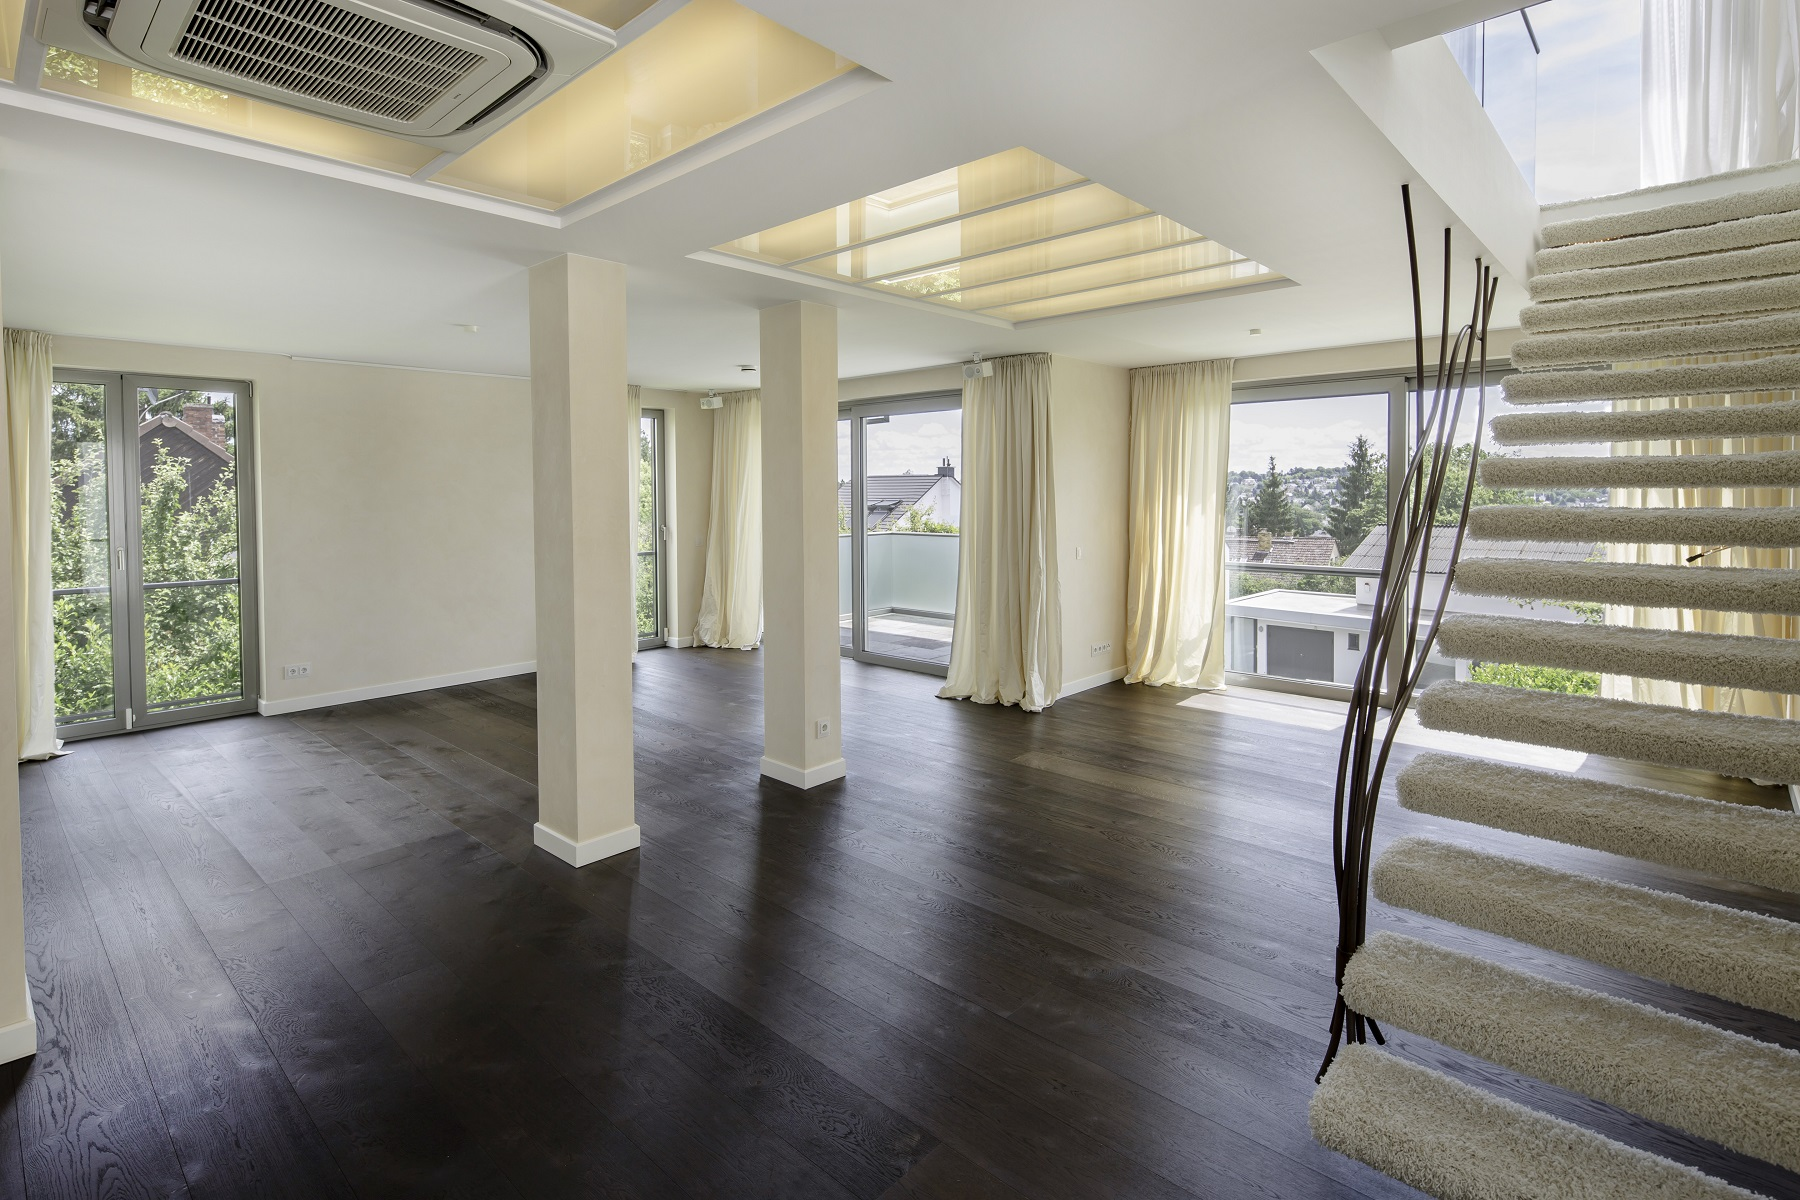 Apartamento por un Venta en Very Exclusive Penthouse with Phantastic View Wiesbaden, Hessen, 65193 Alemania